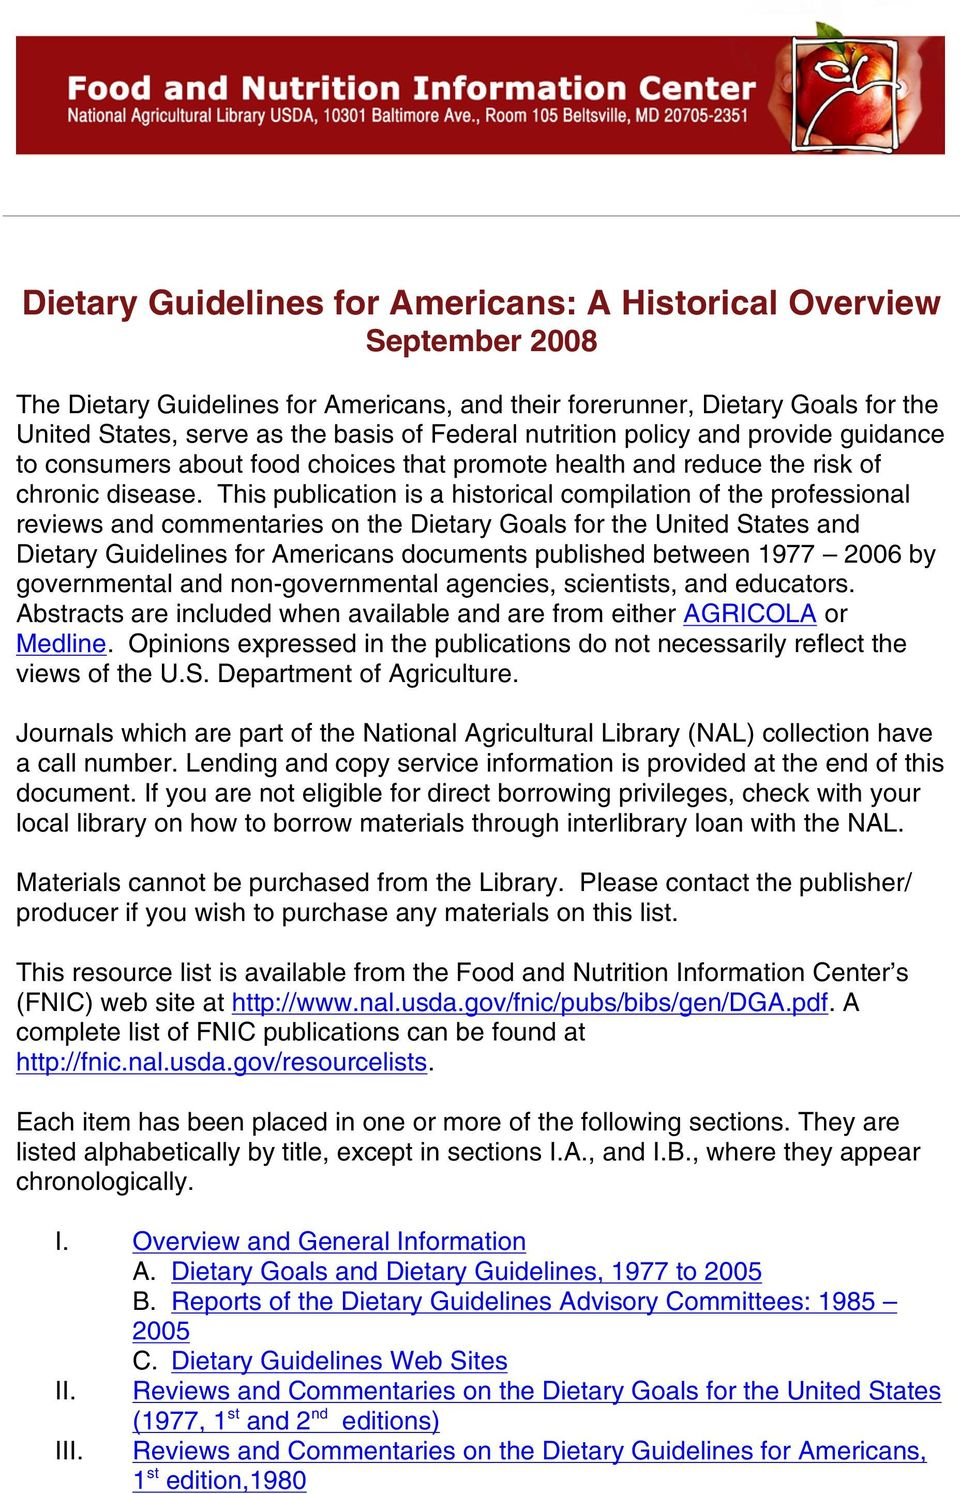 This publication is a historical compilation of the professional reviews and commentaries on the Dietary Goals for the United States and Dietary Guidelines for Americans documents published between